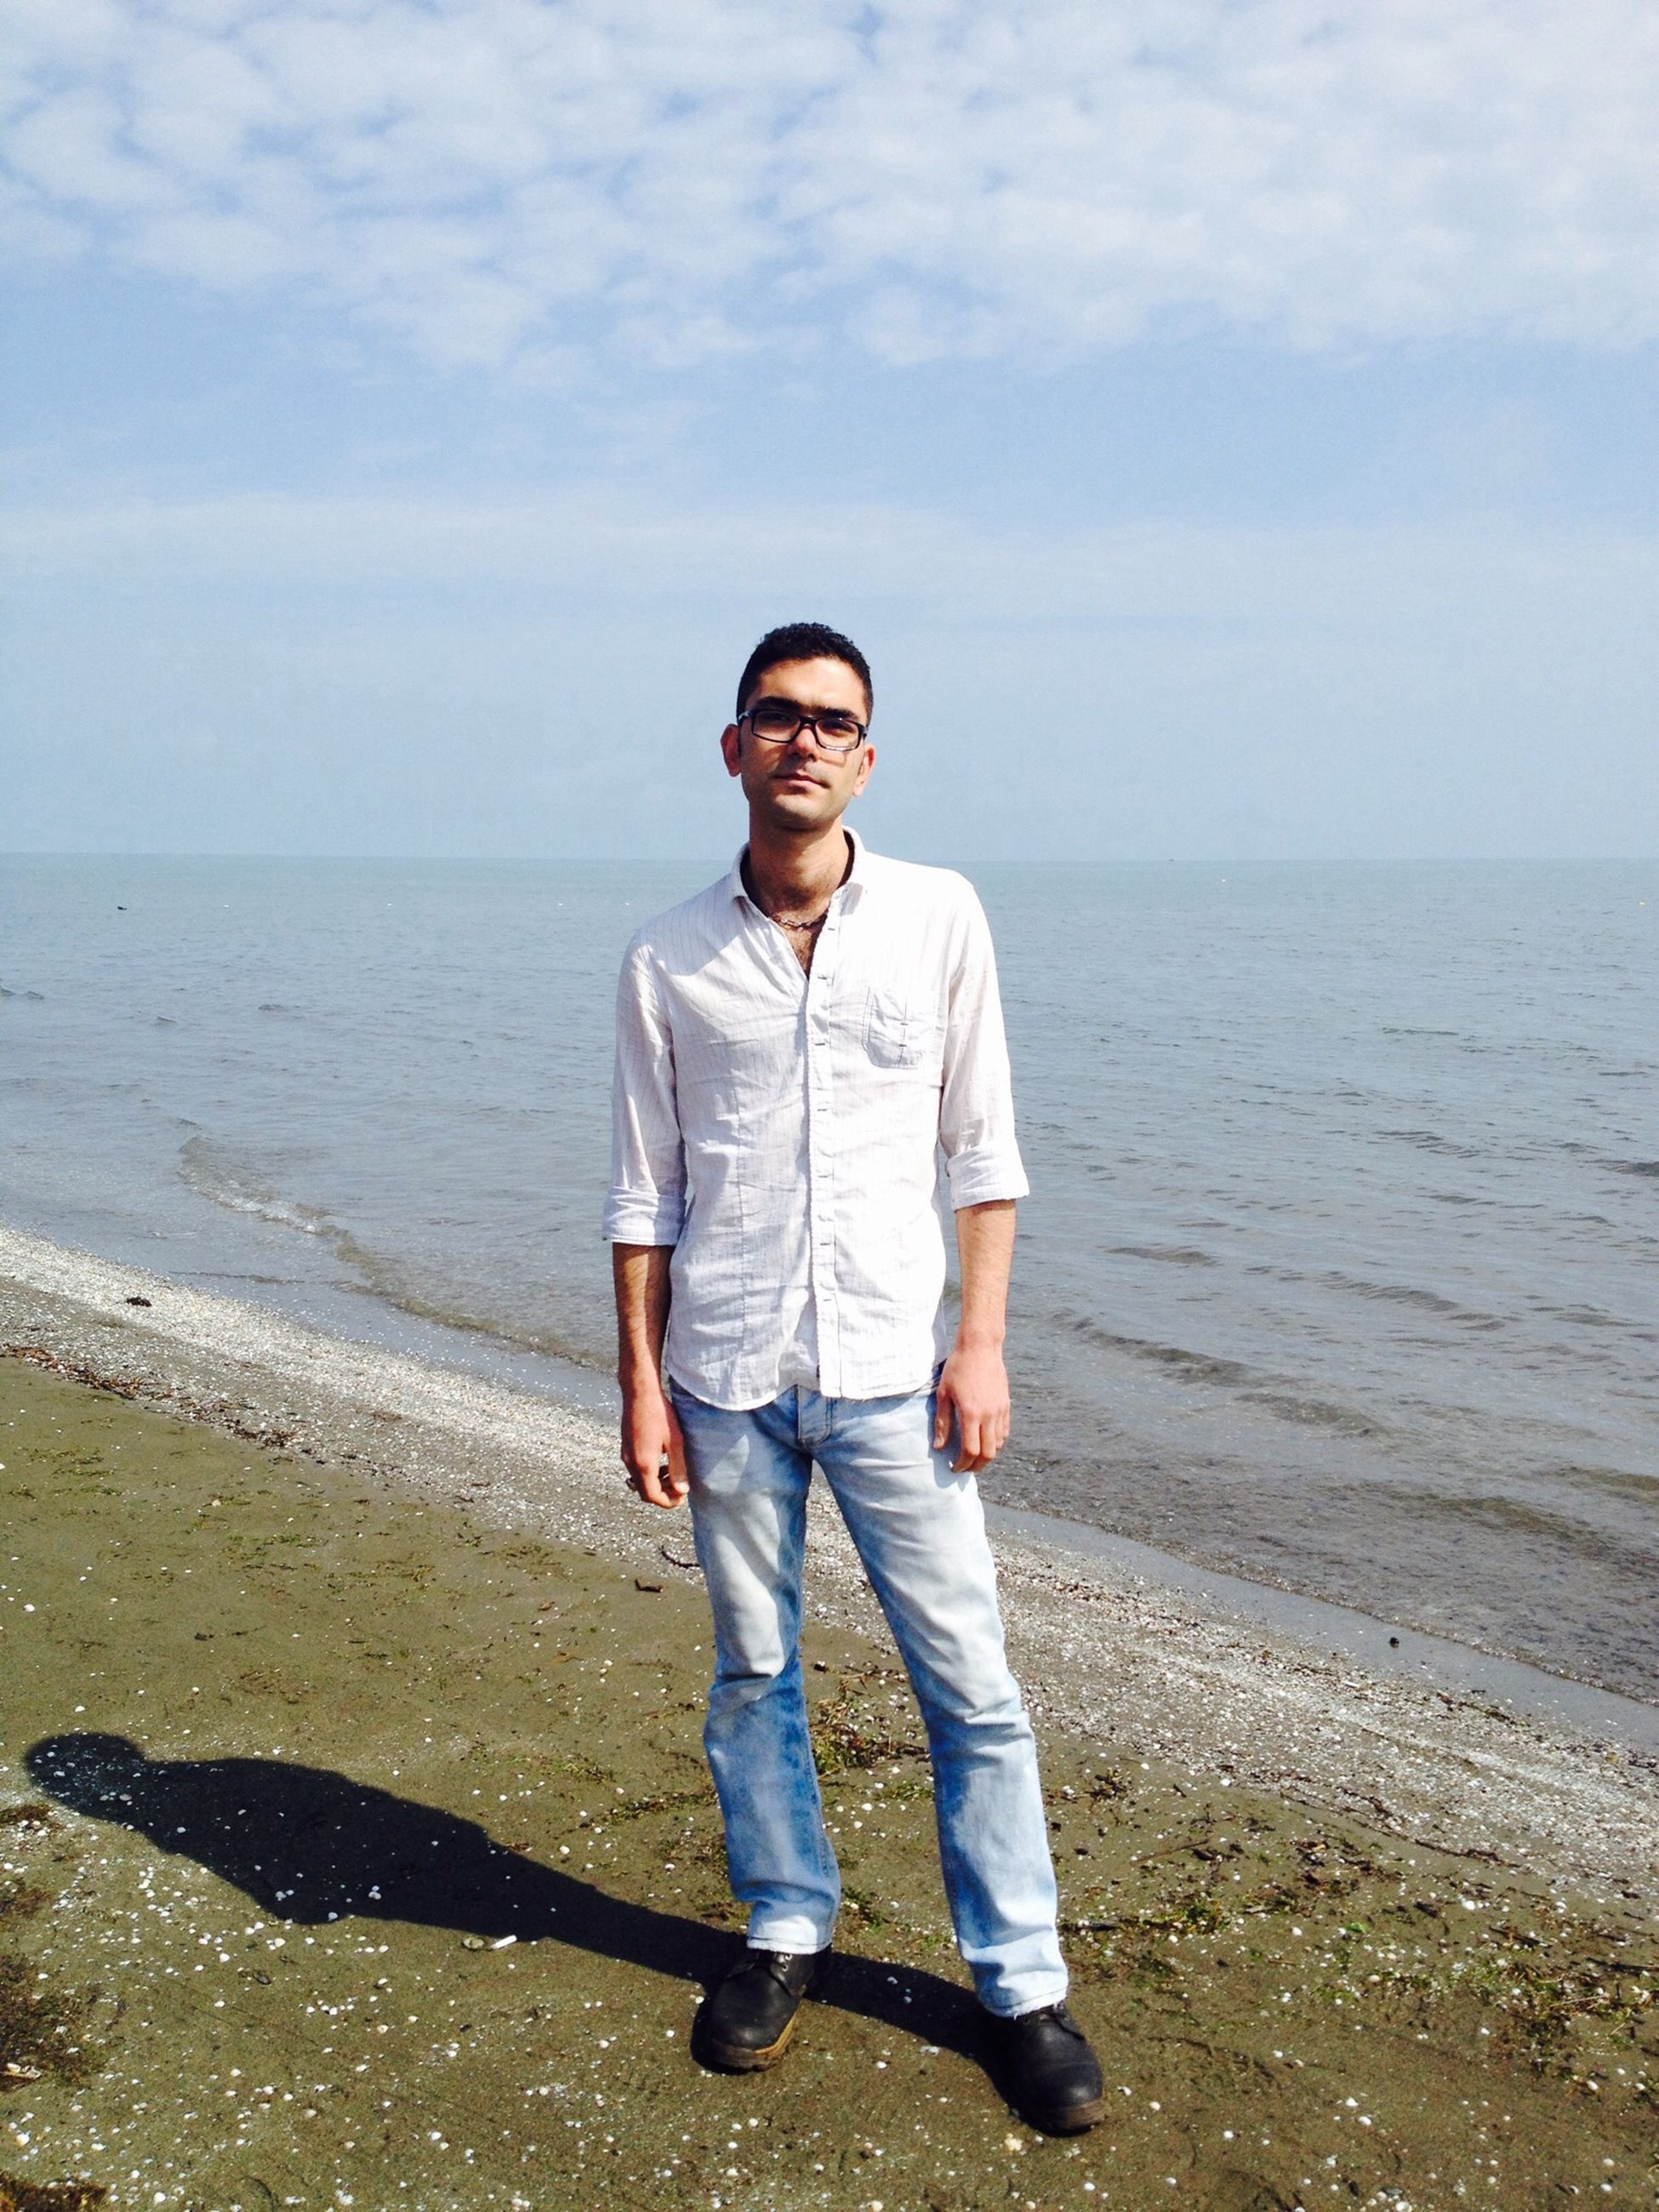 water, sea, casual clothing, sky, beach, horizon over water, full length, person, lifestyles, shore, standing, leisure activity, front view, childhood, looking at camera, elementary age, nature, three quarter length